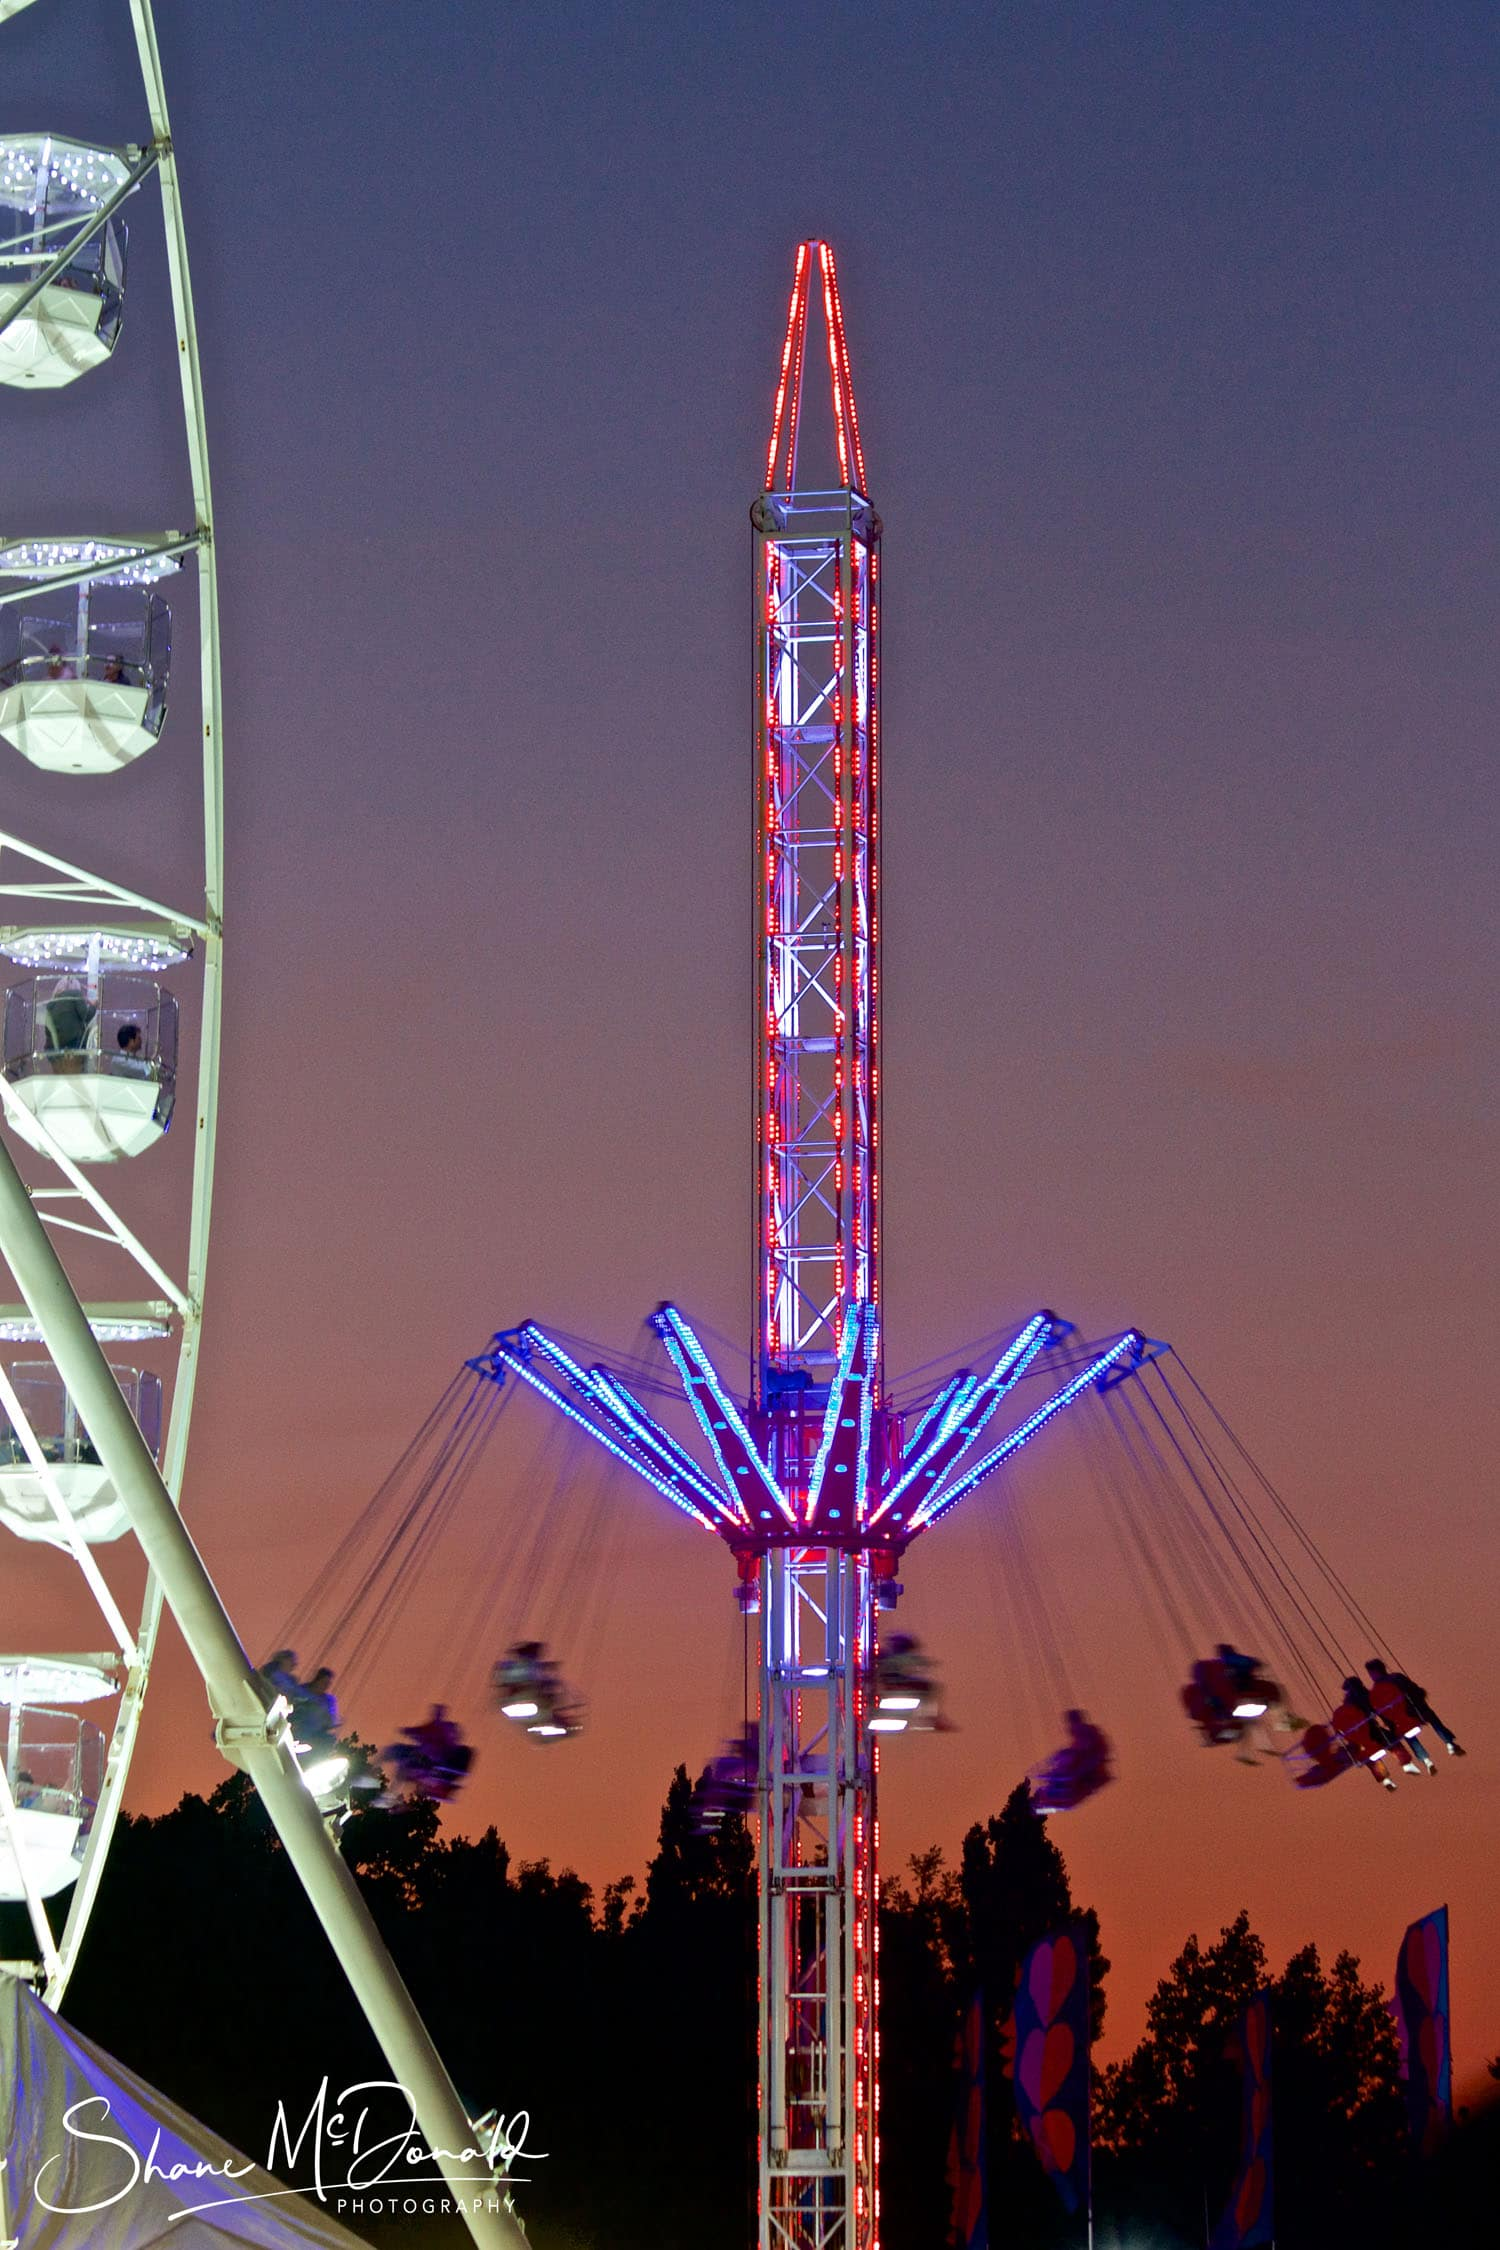 The other Fun Rides at the Isle of Wight Festival